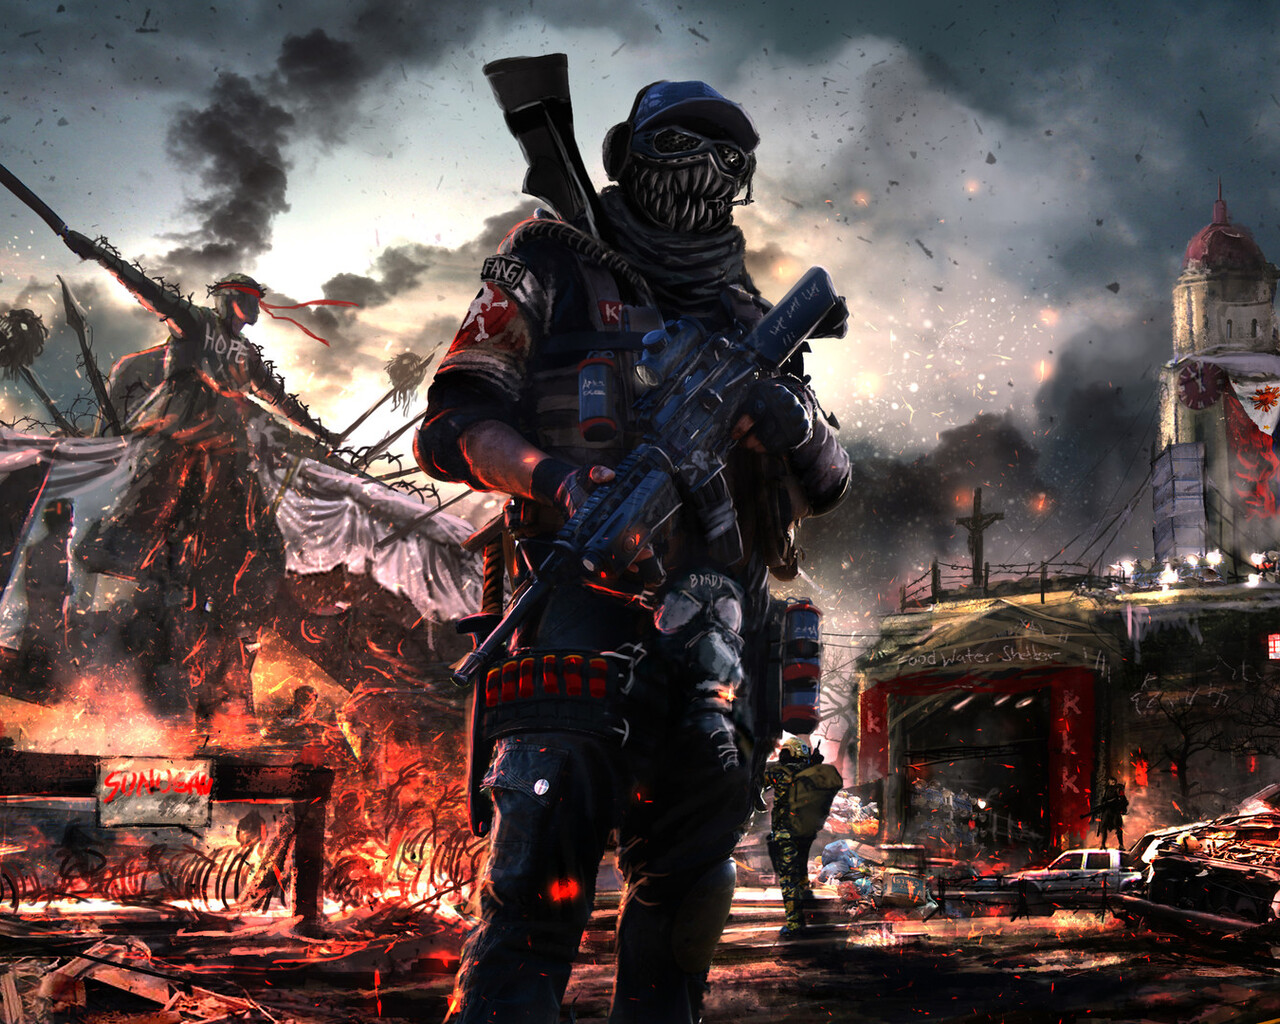 post-apocalyptic-soldier-artwork-qhd.jpg